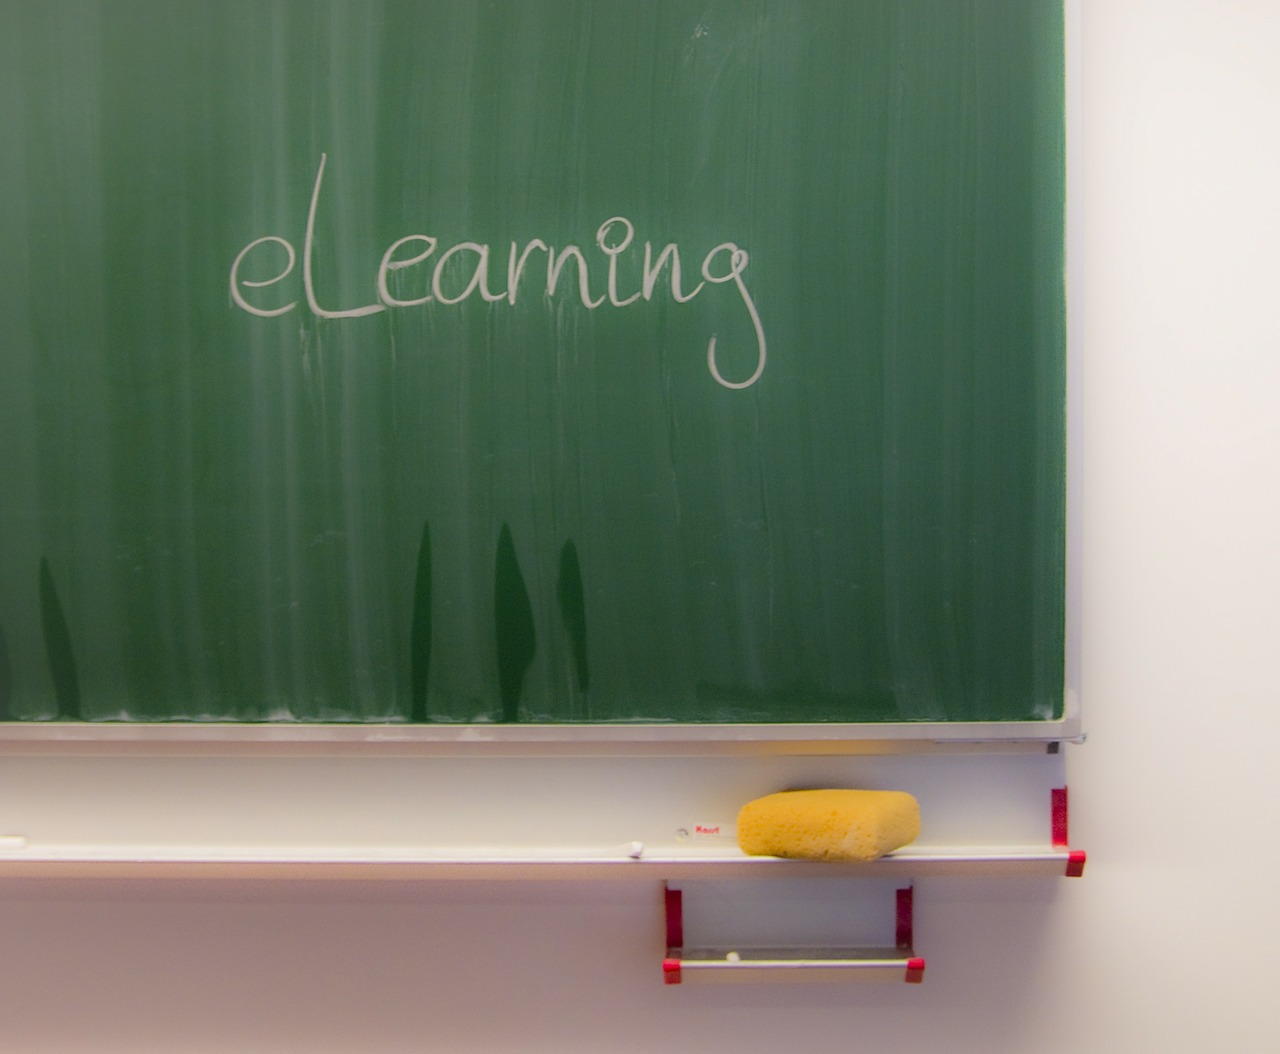 Harness e-learning throughout for the best outcome